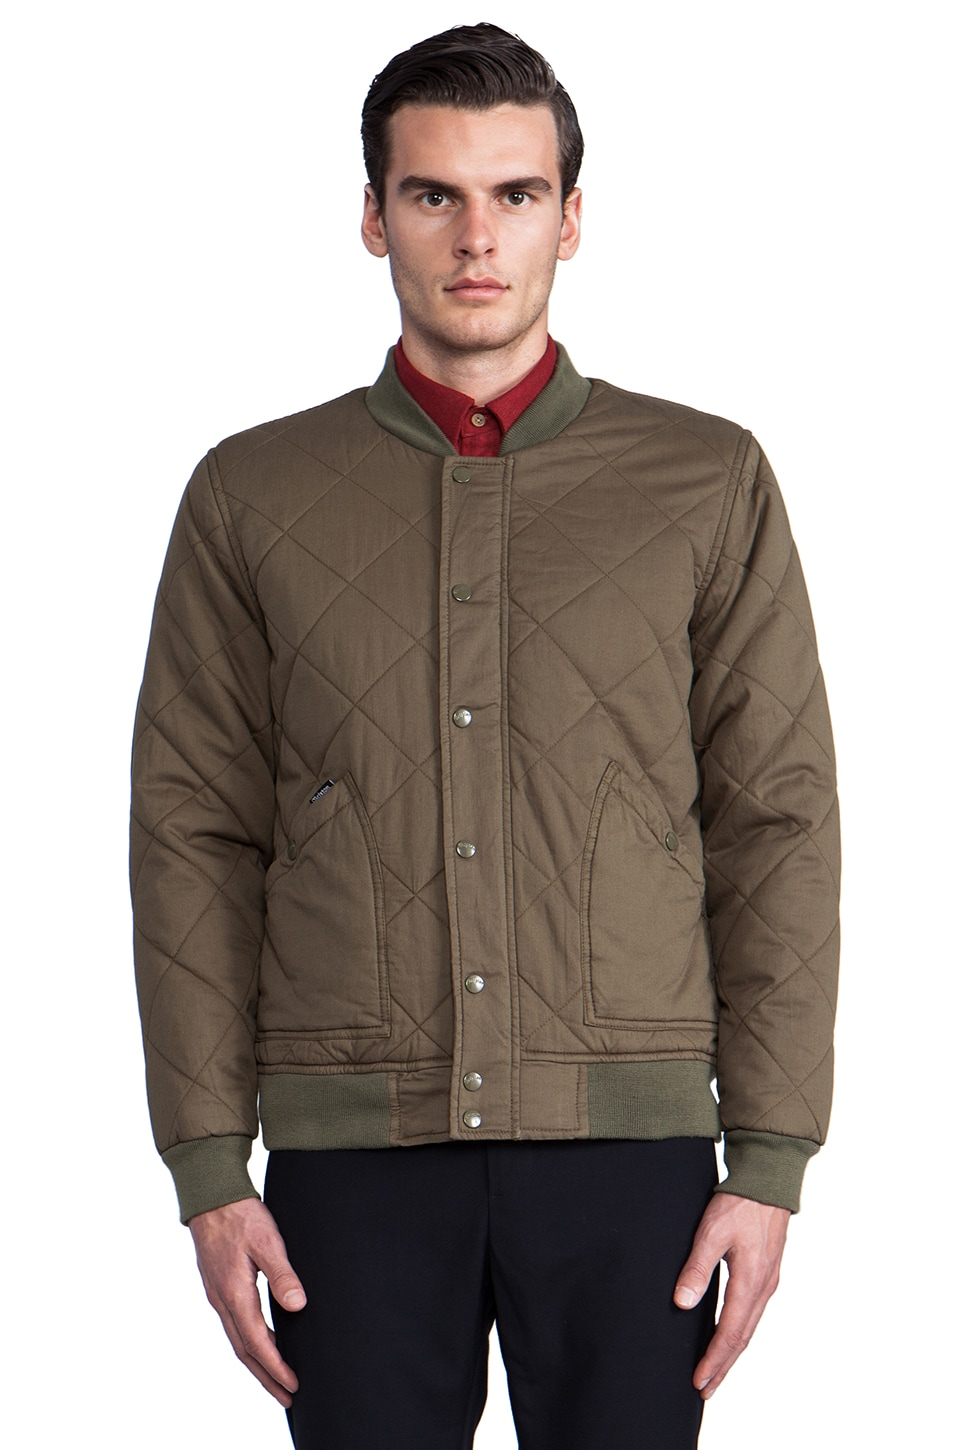 Brixton Ace Jacket in Olive